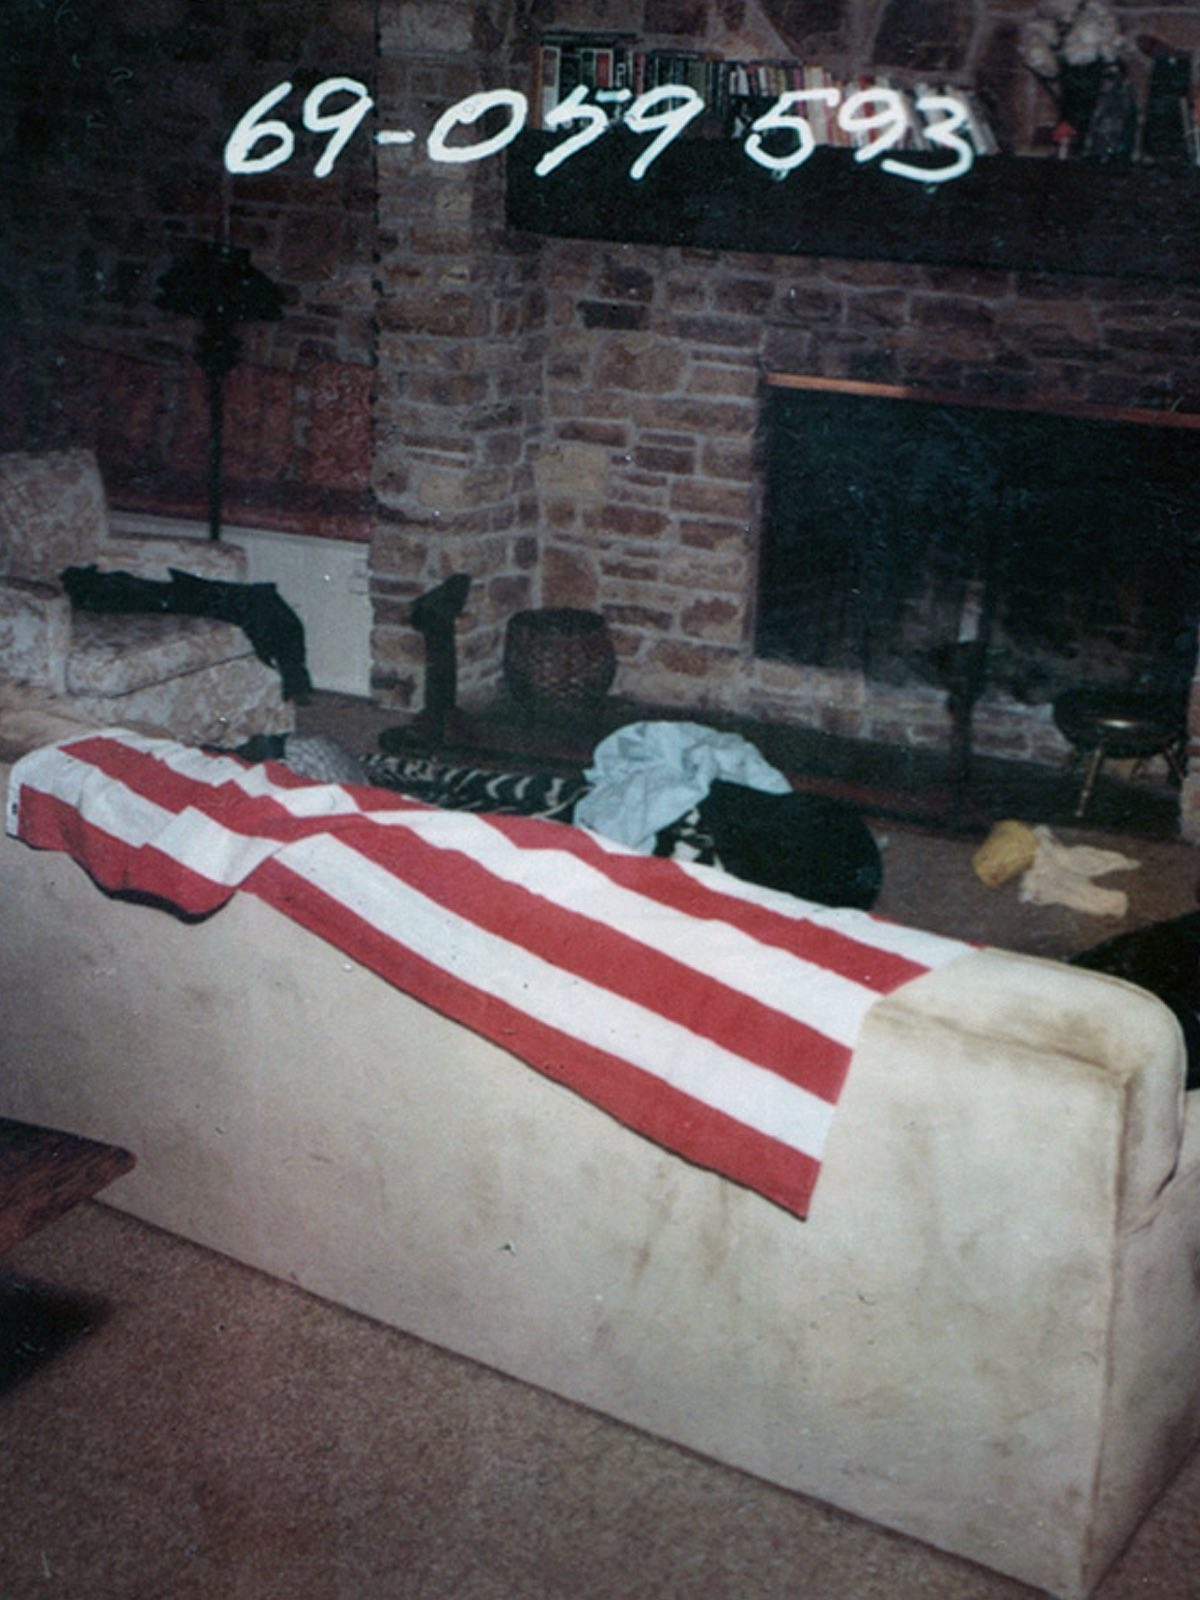 The living room where the heavily pregant Sharon Tate was slaughtered.